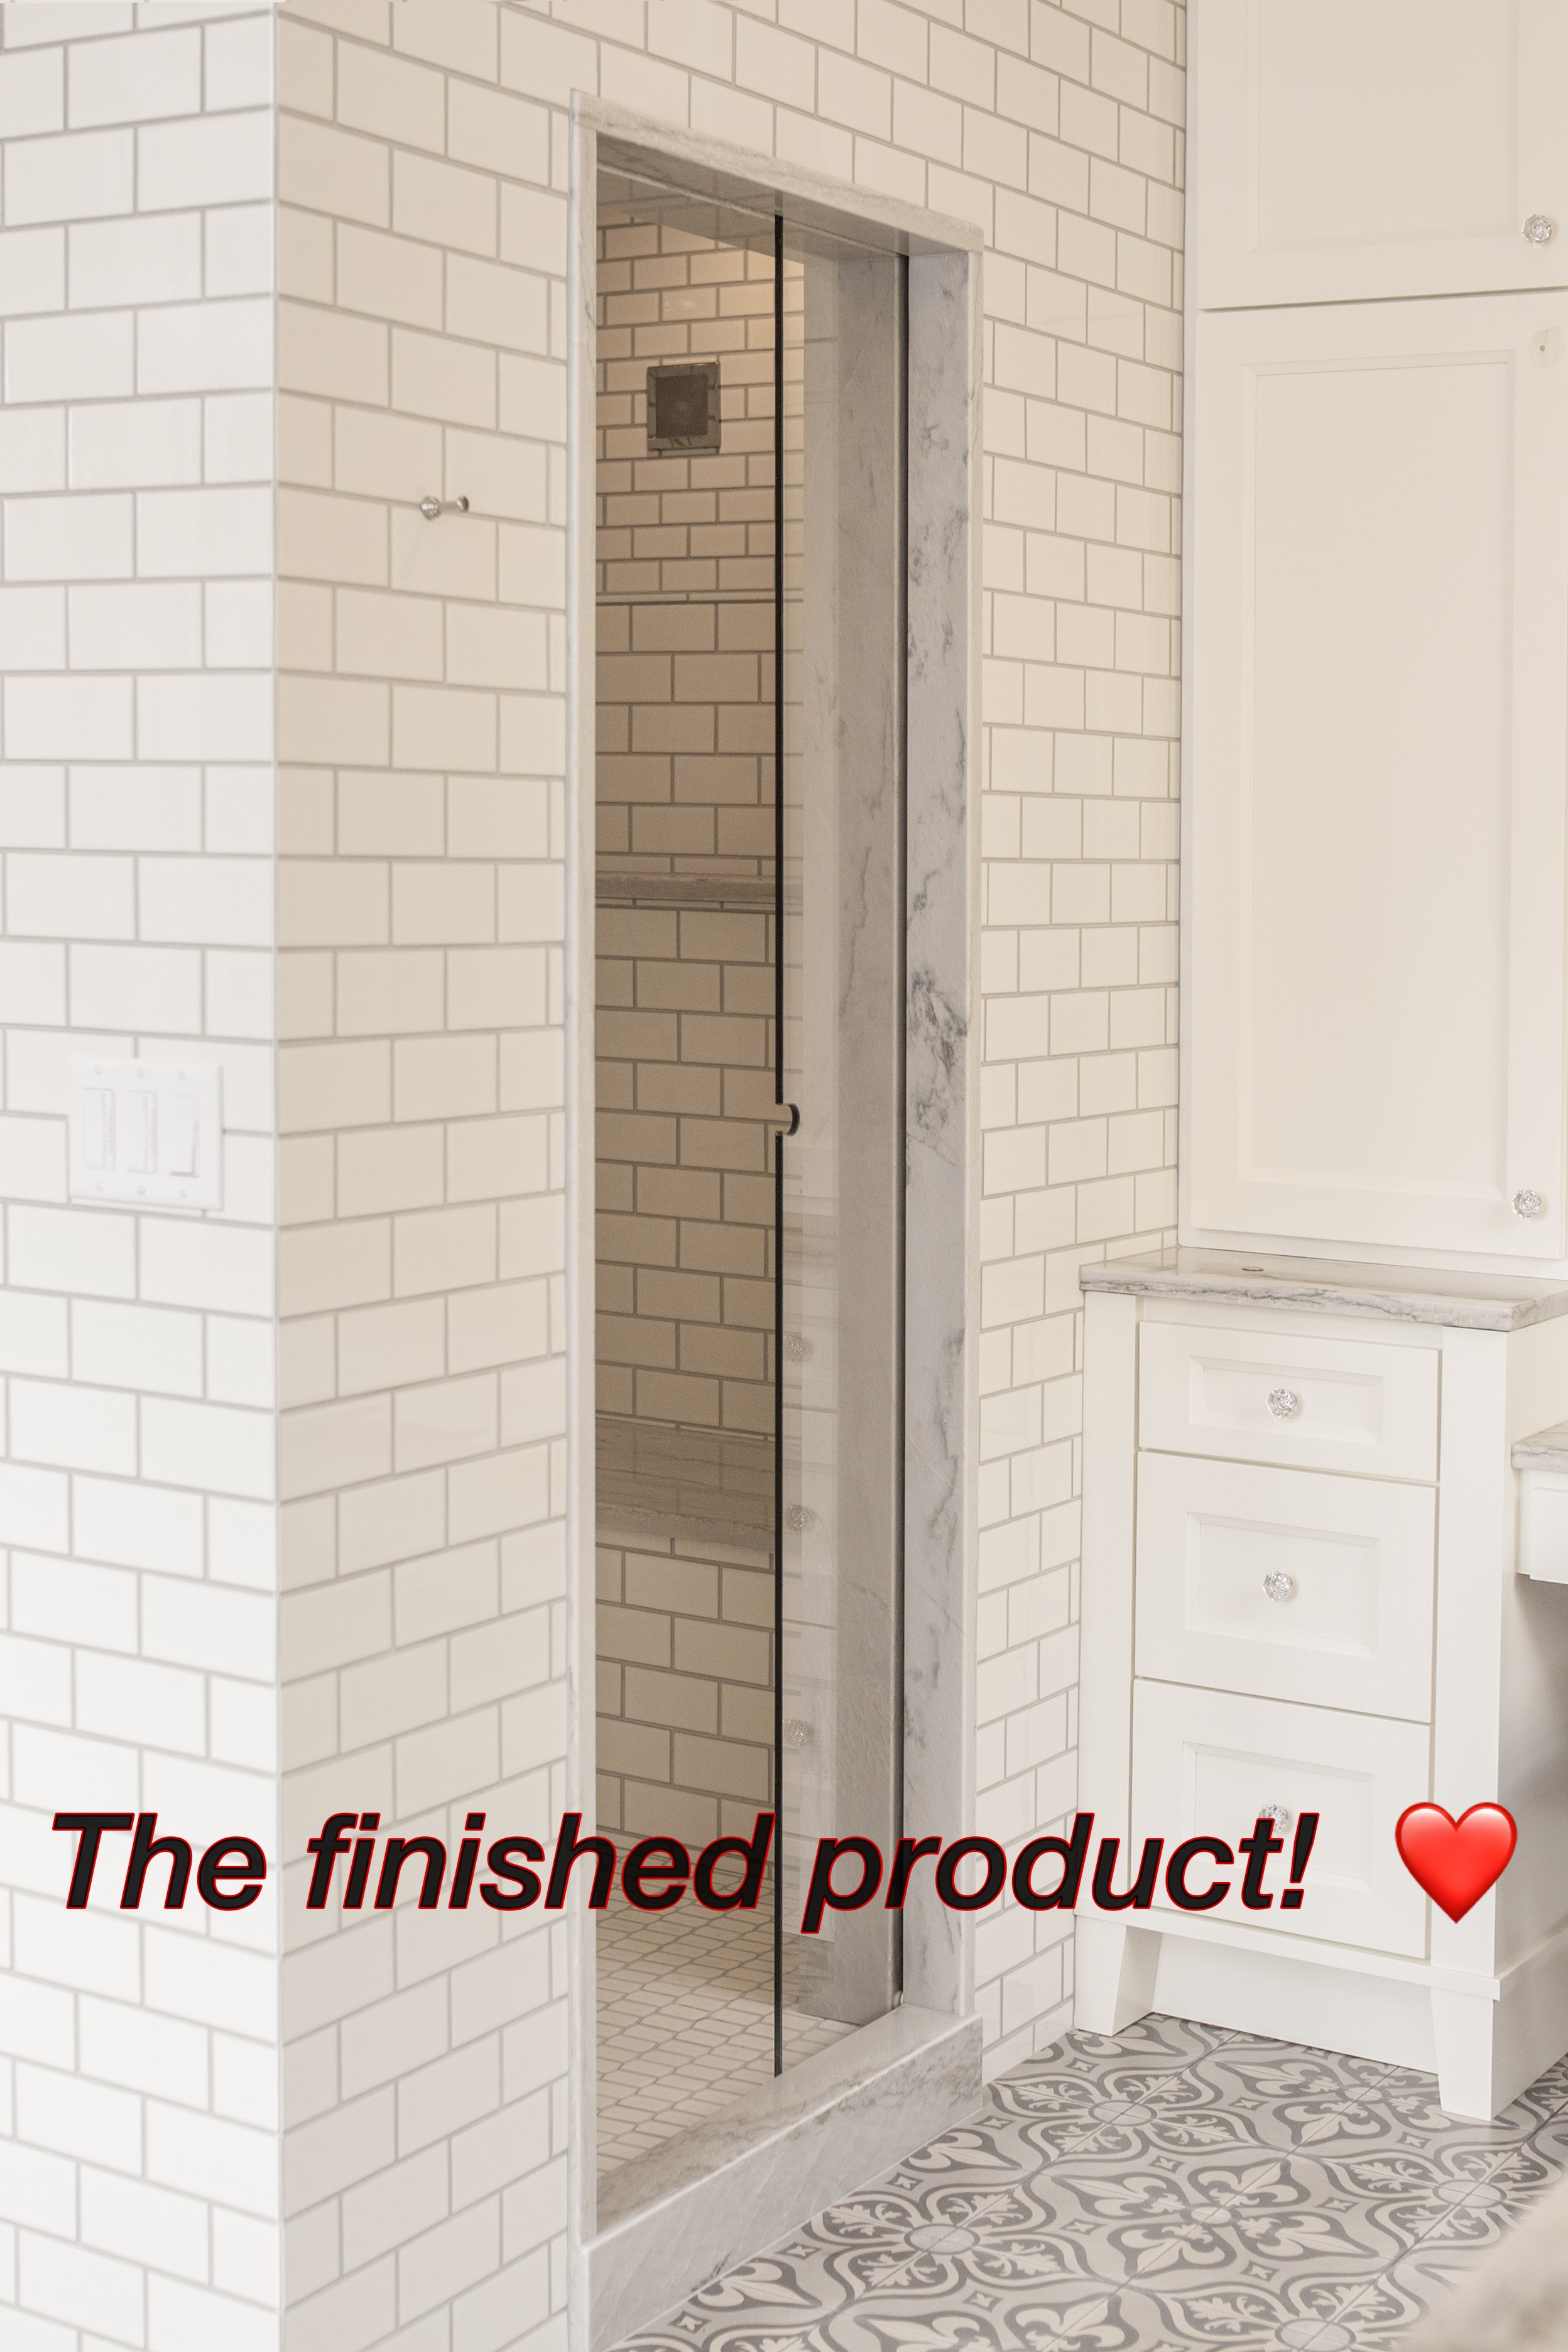 Finished product showing the Air-pocket shower door.